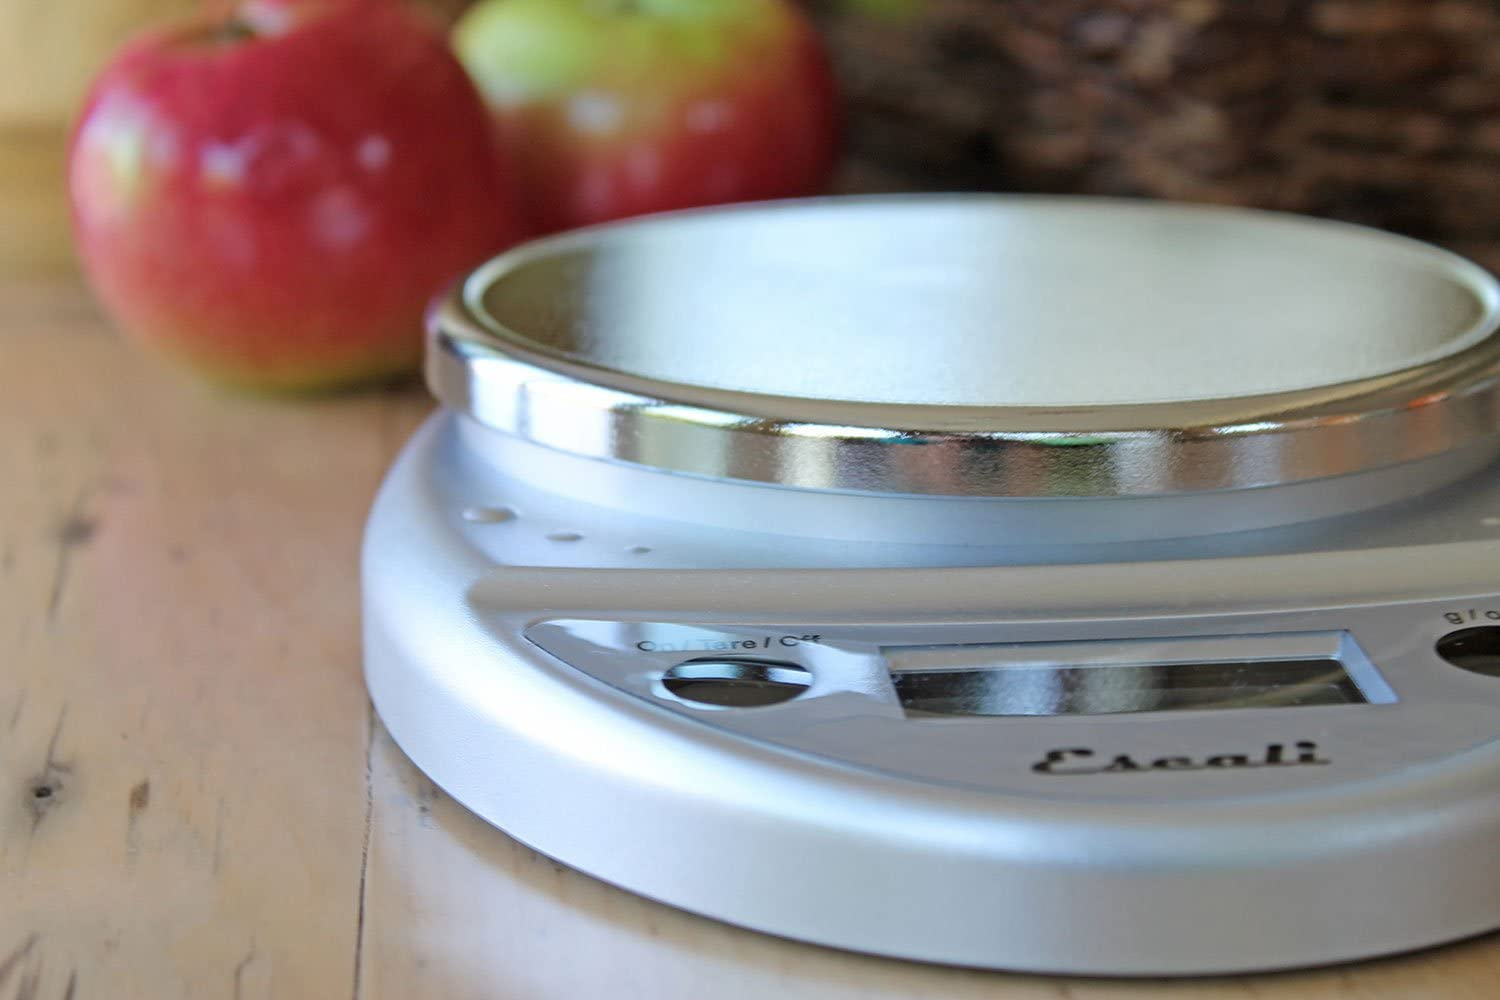 A white kitchen scale on a wood counter with apples in the background